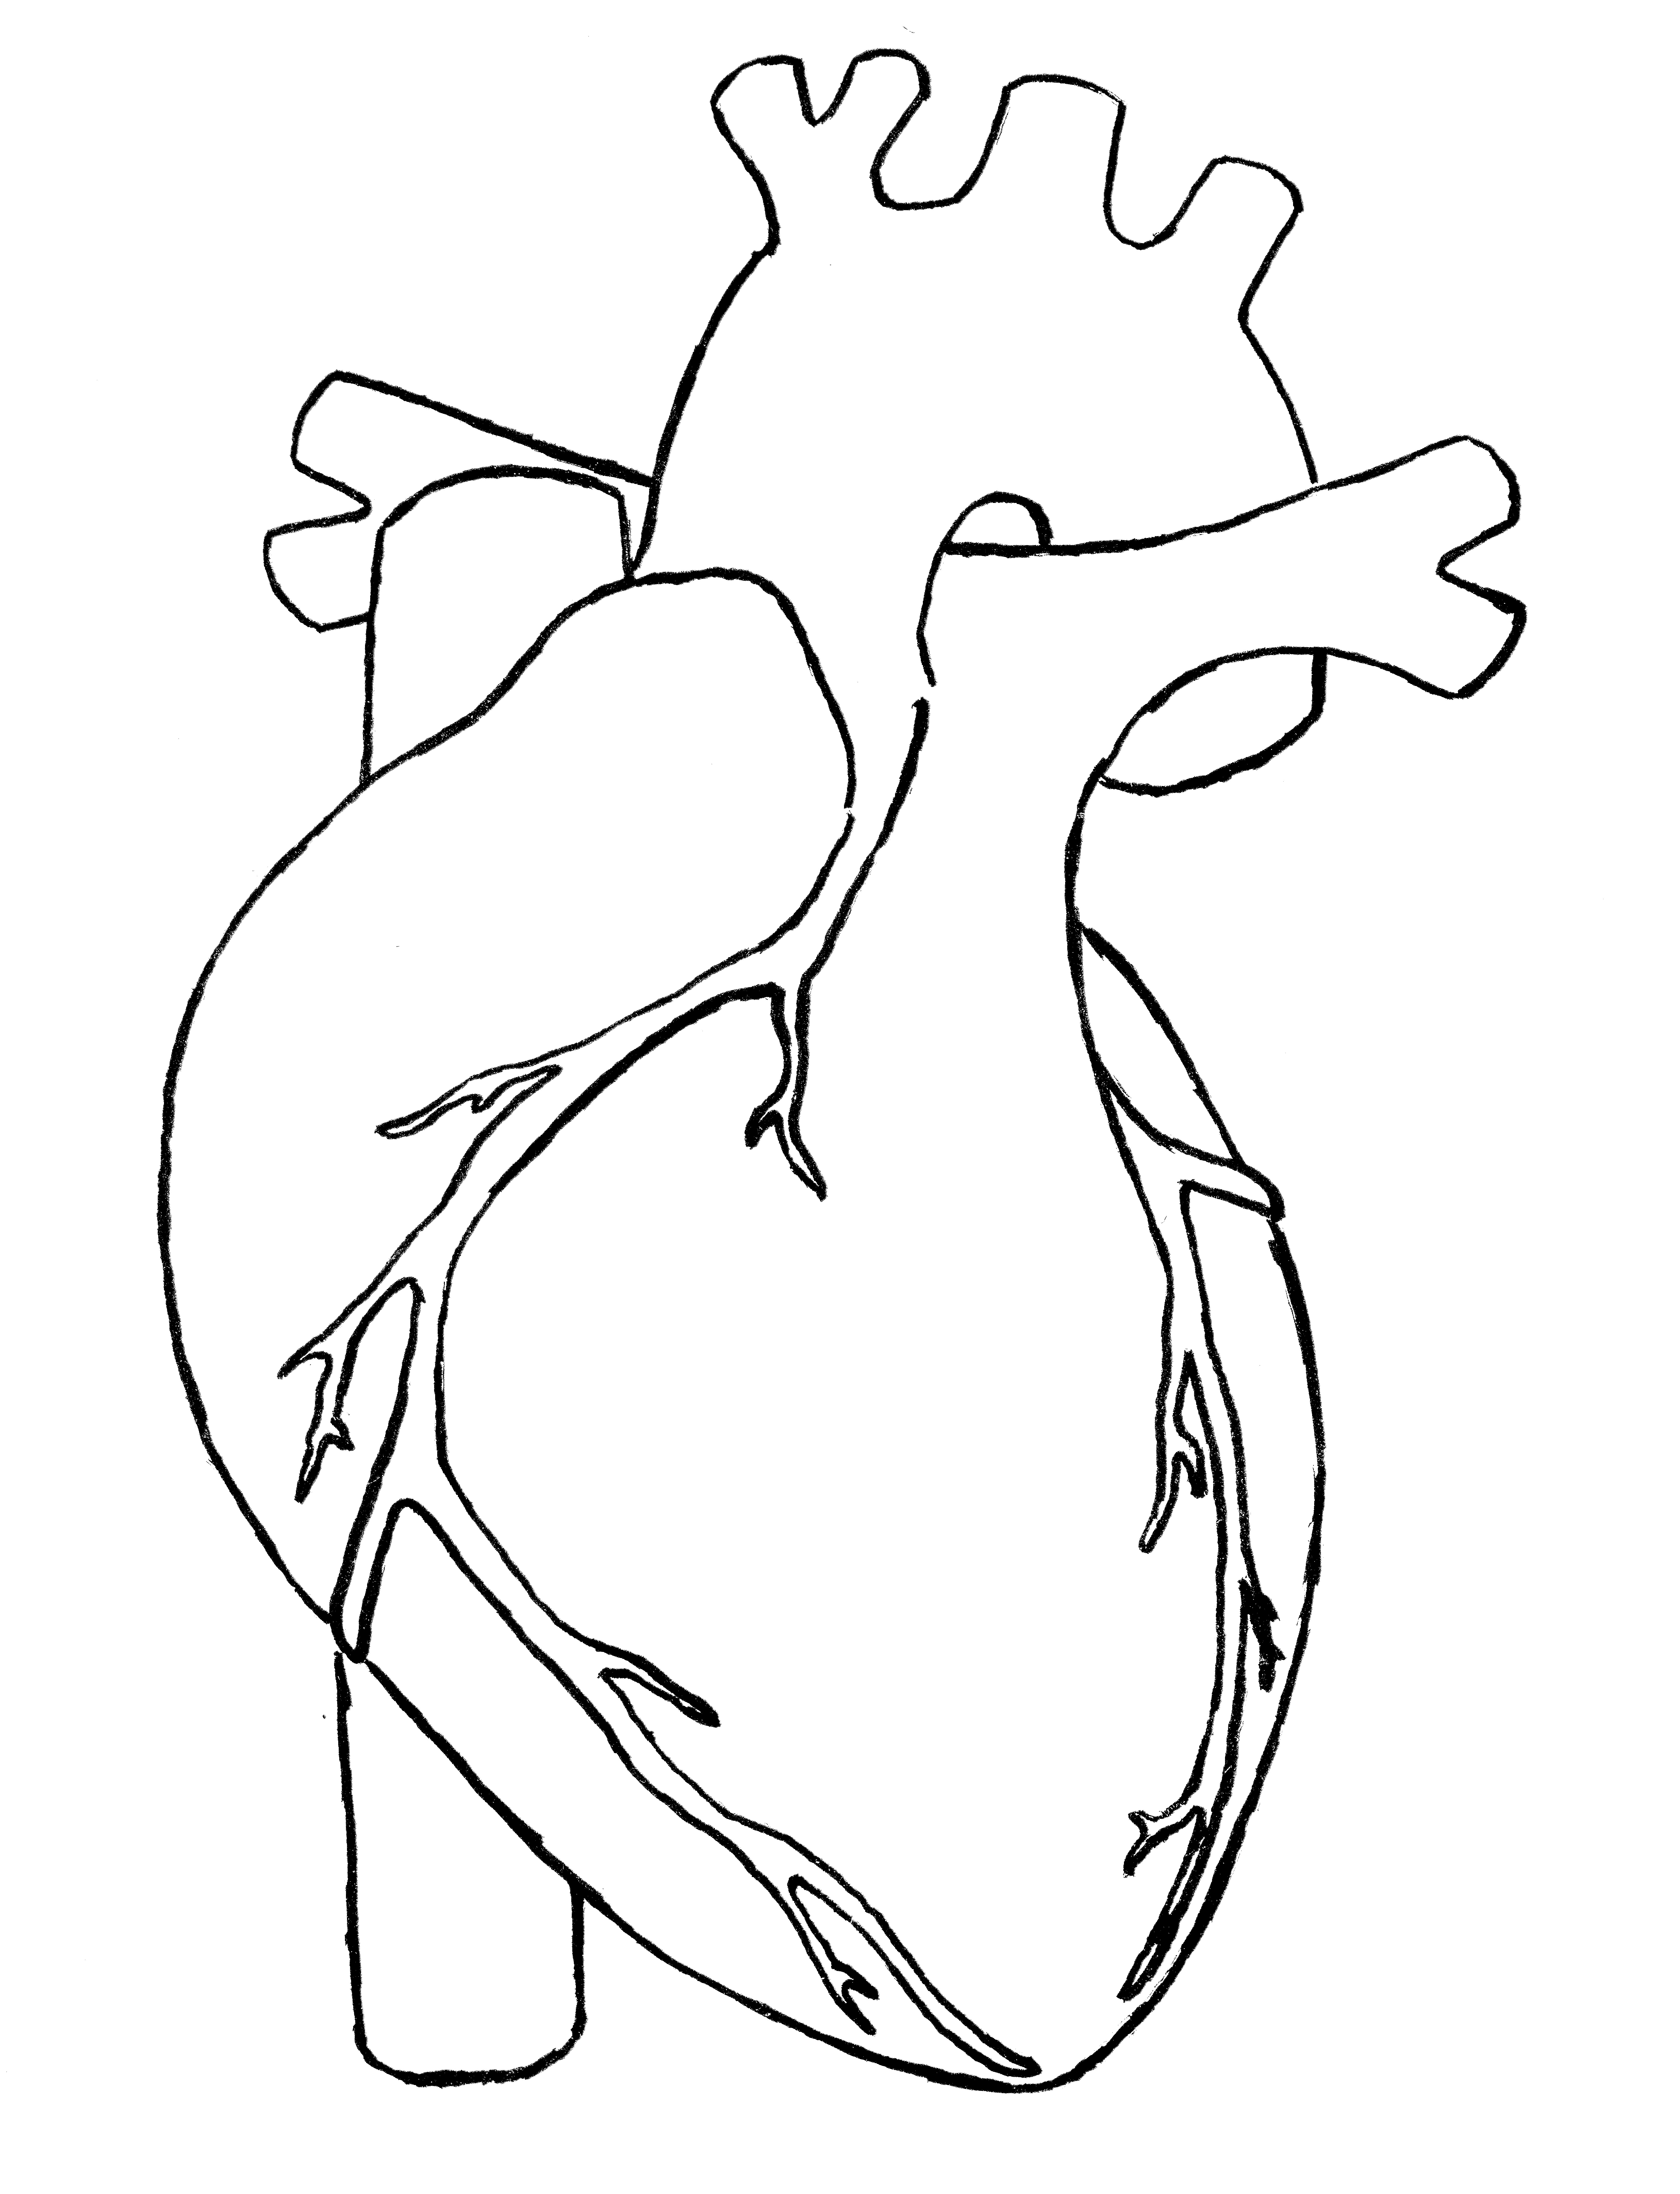 Best Real Heart Clipart #13466 - Clipartion.com